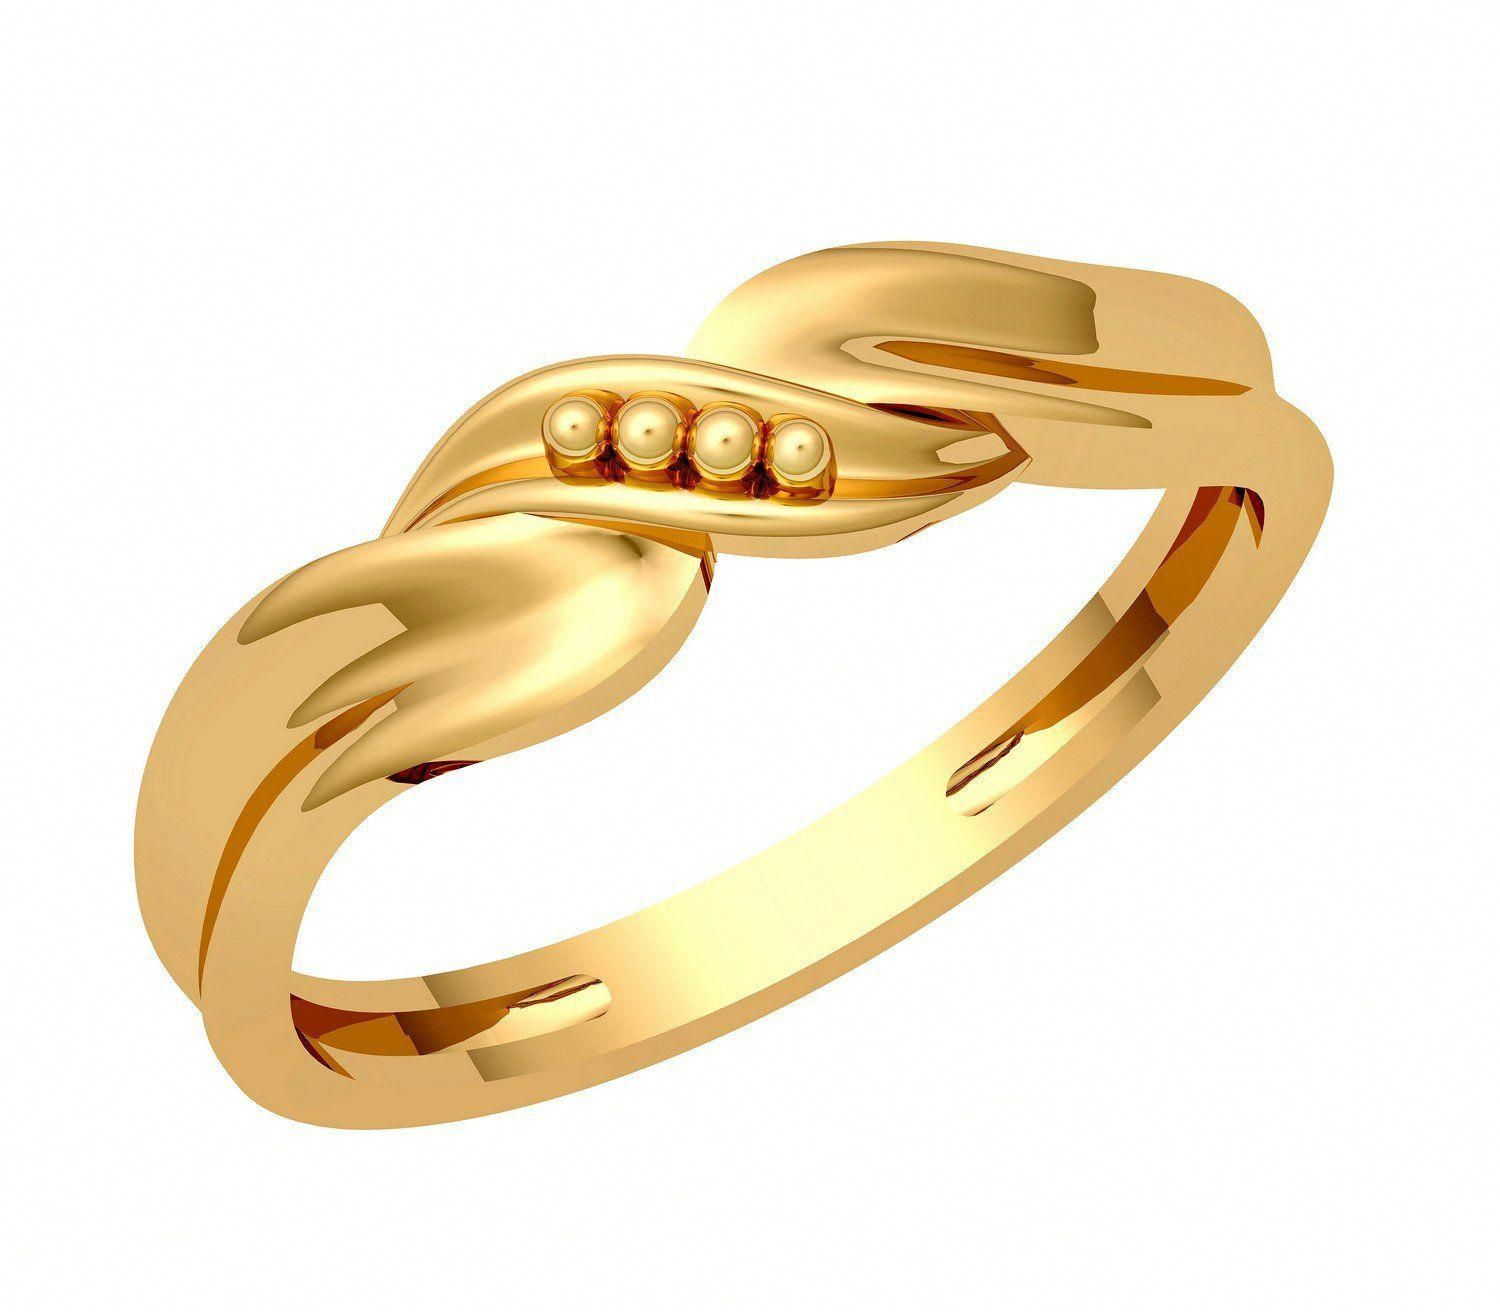 Gold Jewelry 2020 Goldjewelryfashion Goldjewelryvideosjewellery Goldjewelrynecklacewedding In 2020 Gold Jewelry Earrings Gold Finger Rings Gold Ring Designs